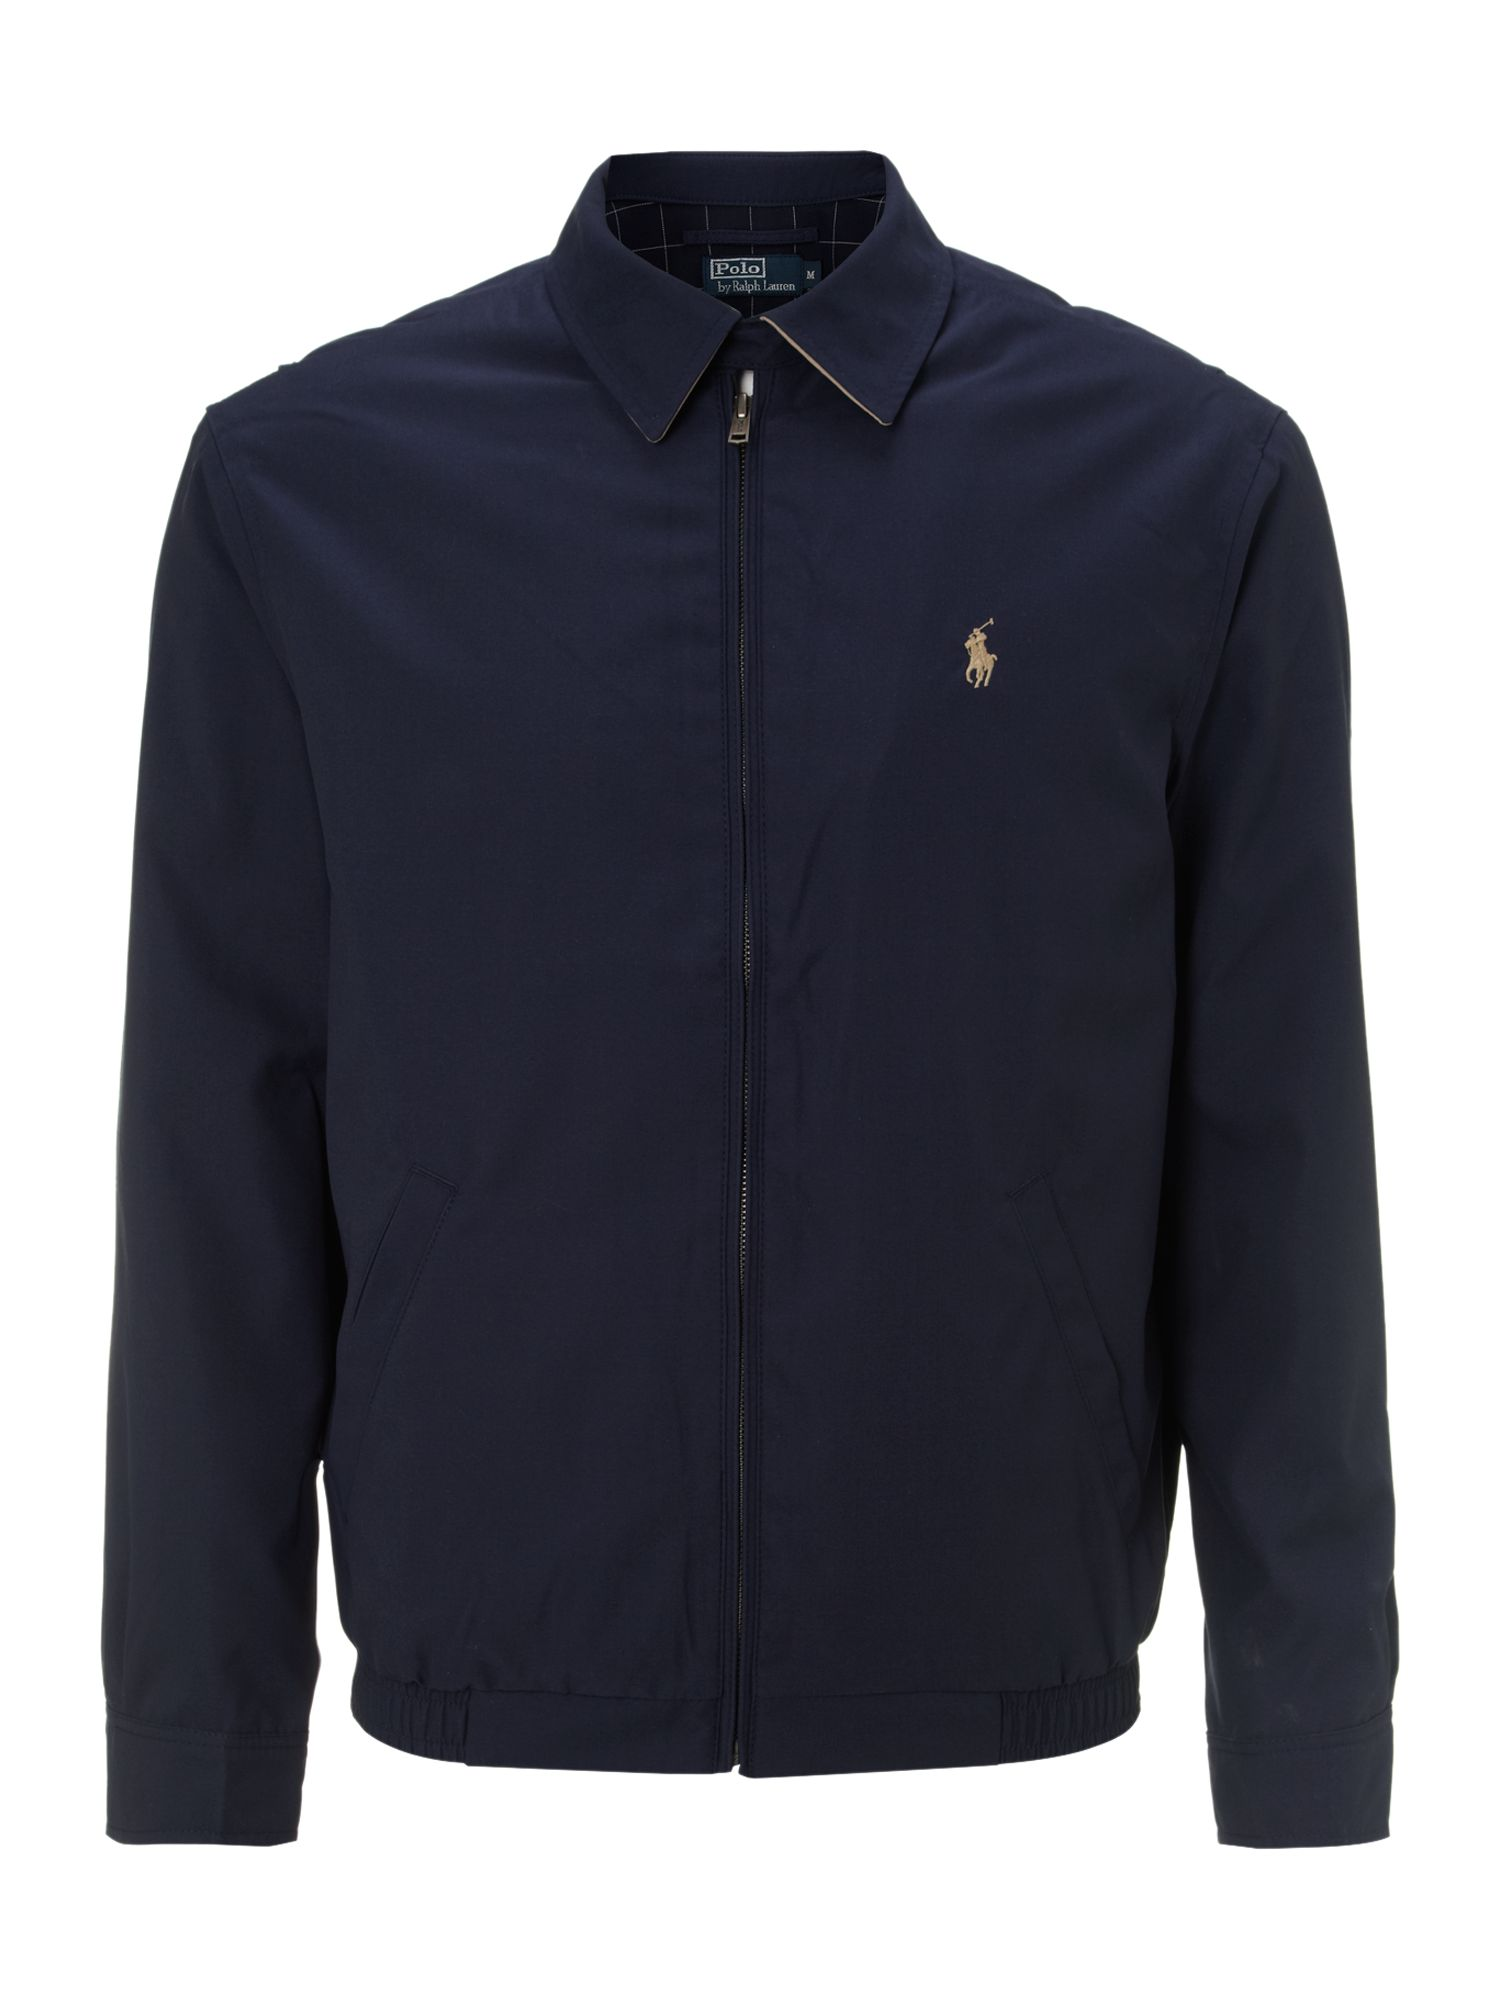 Polo Ralph Lauren Classic windbreaker jacket ...